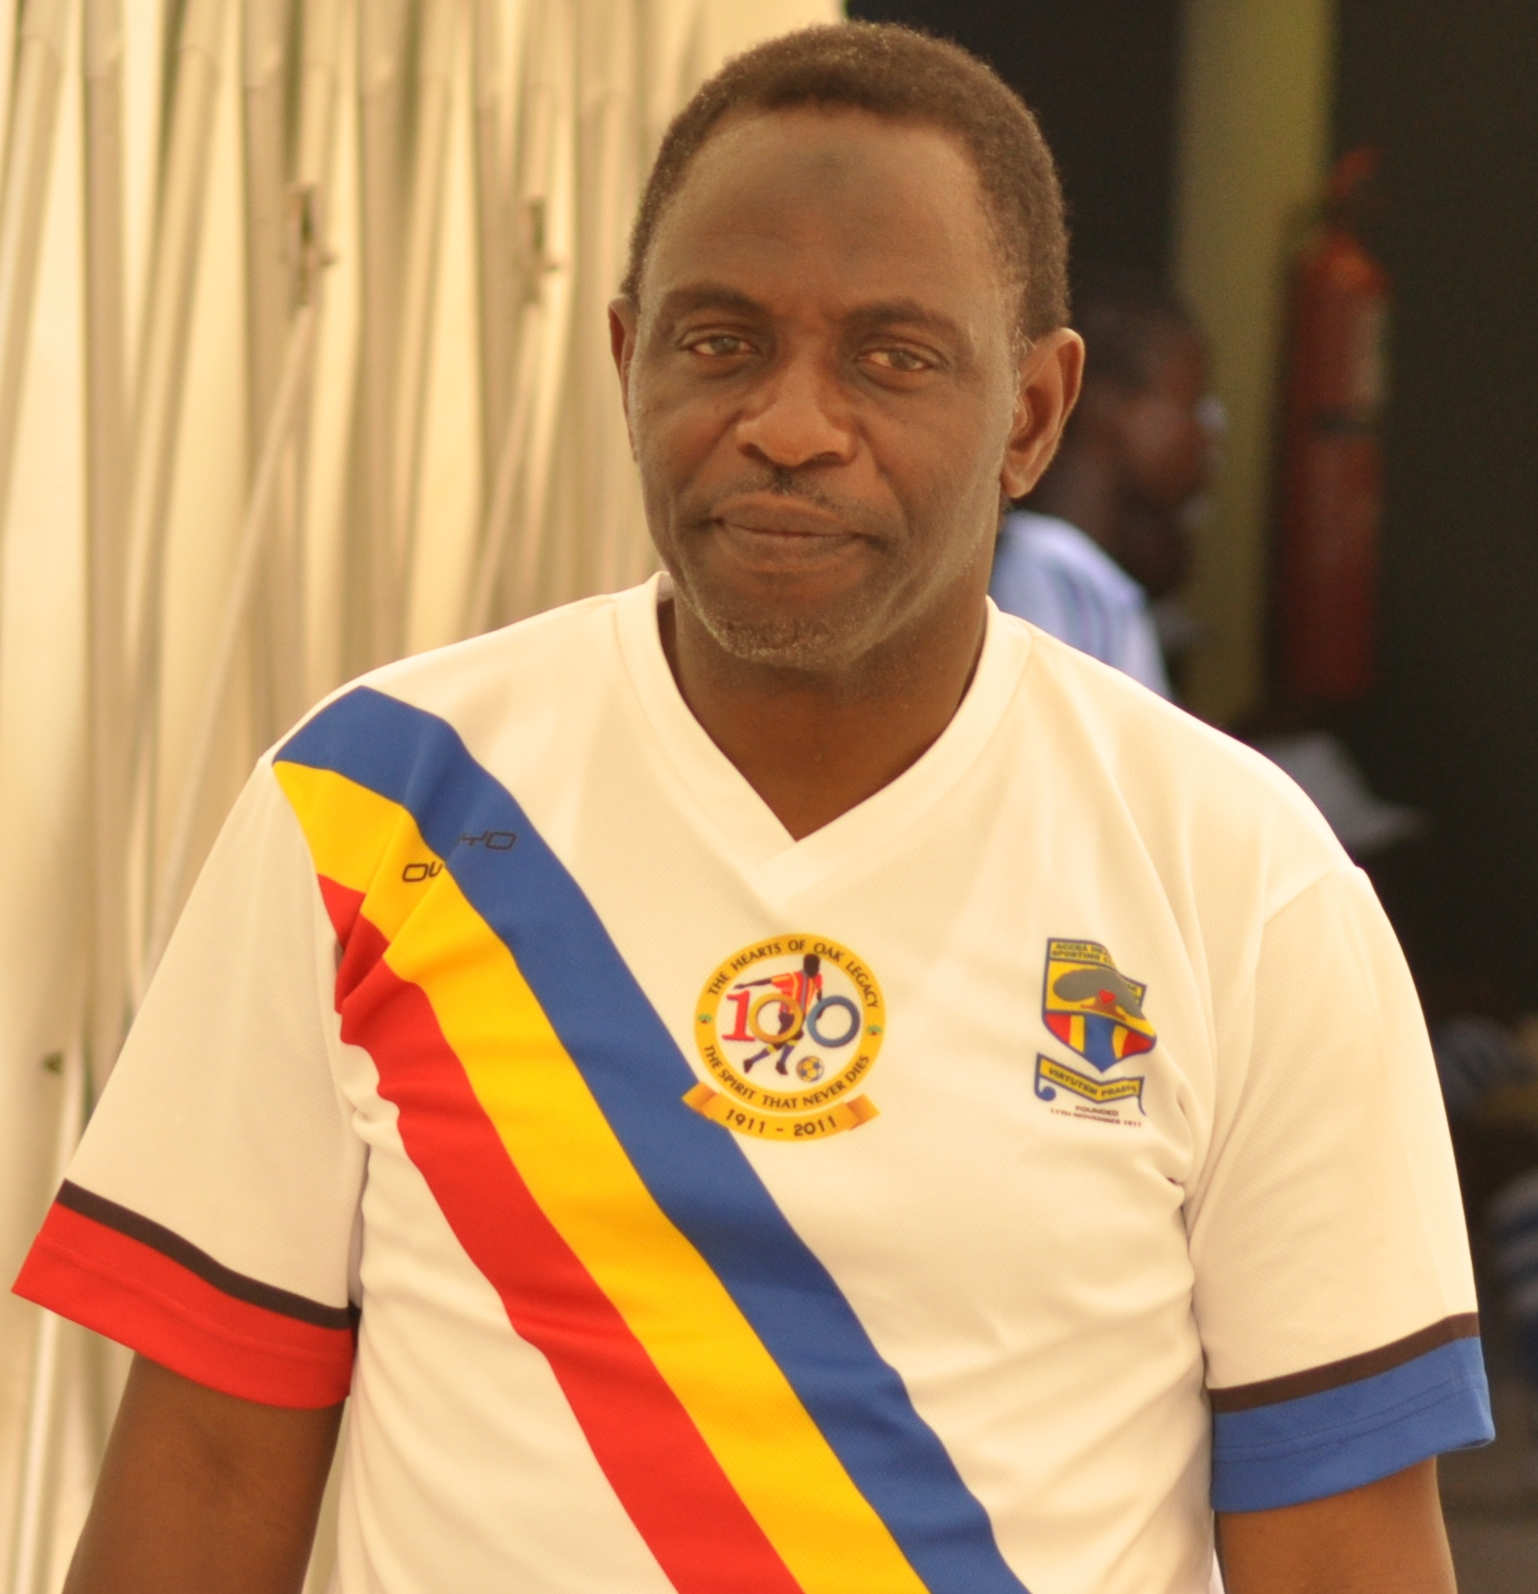 Mohammed Polo impressed with level of officiating in on-going Ghana League